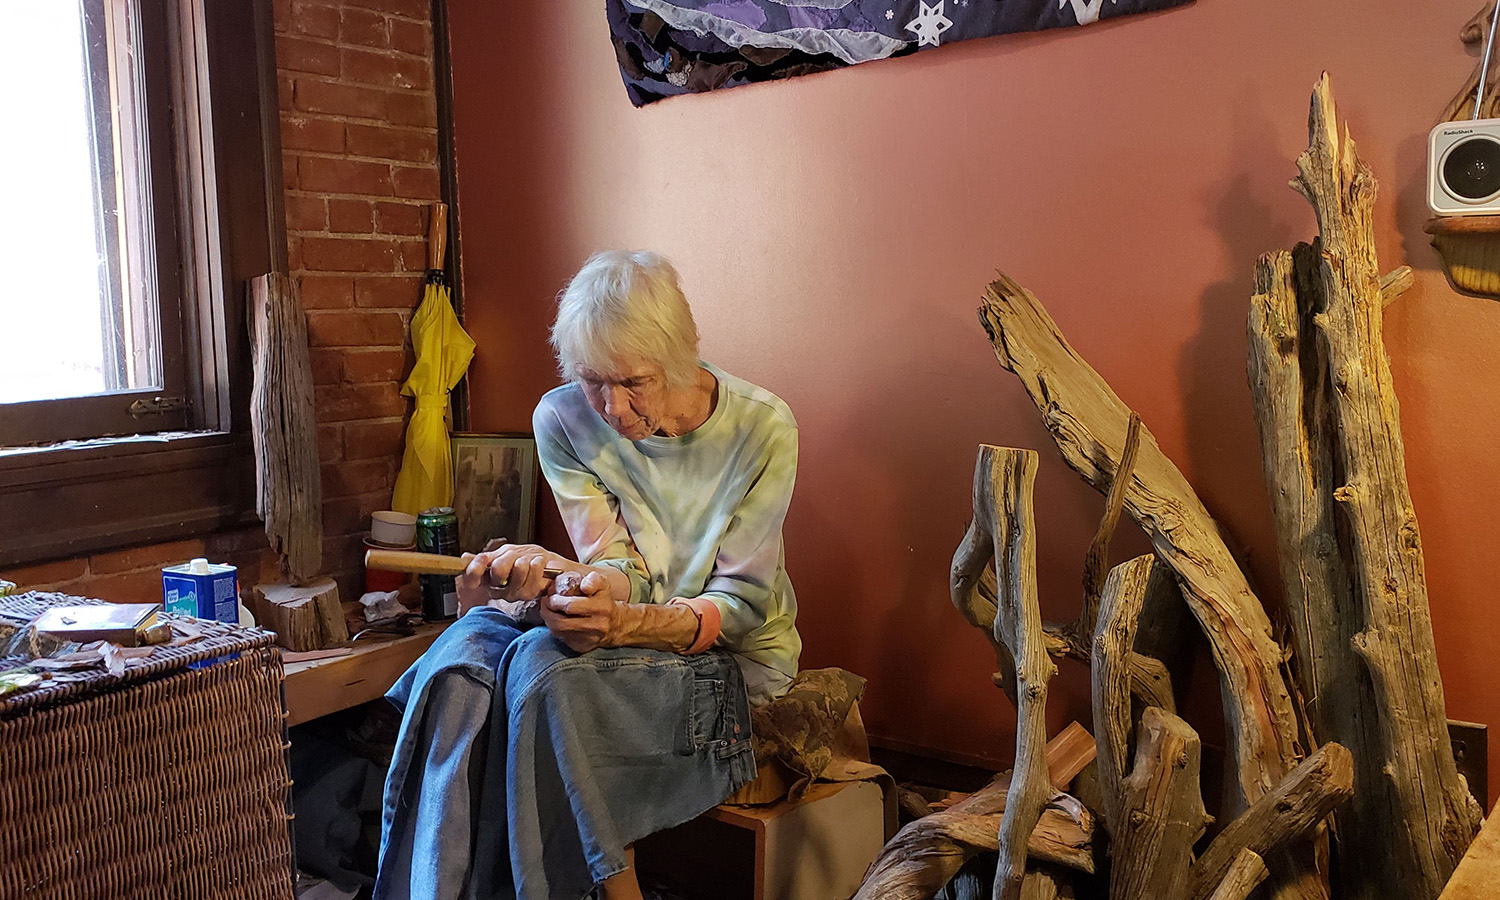 Sophie Cowman, Wood Carver + Quilter | Humanitou Yoga + Creativity Blog